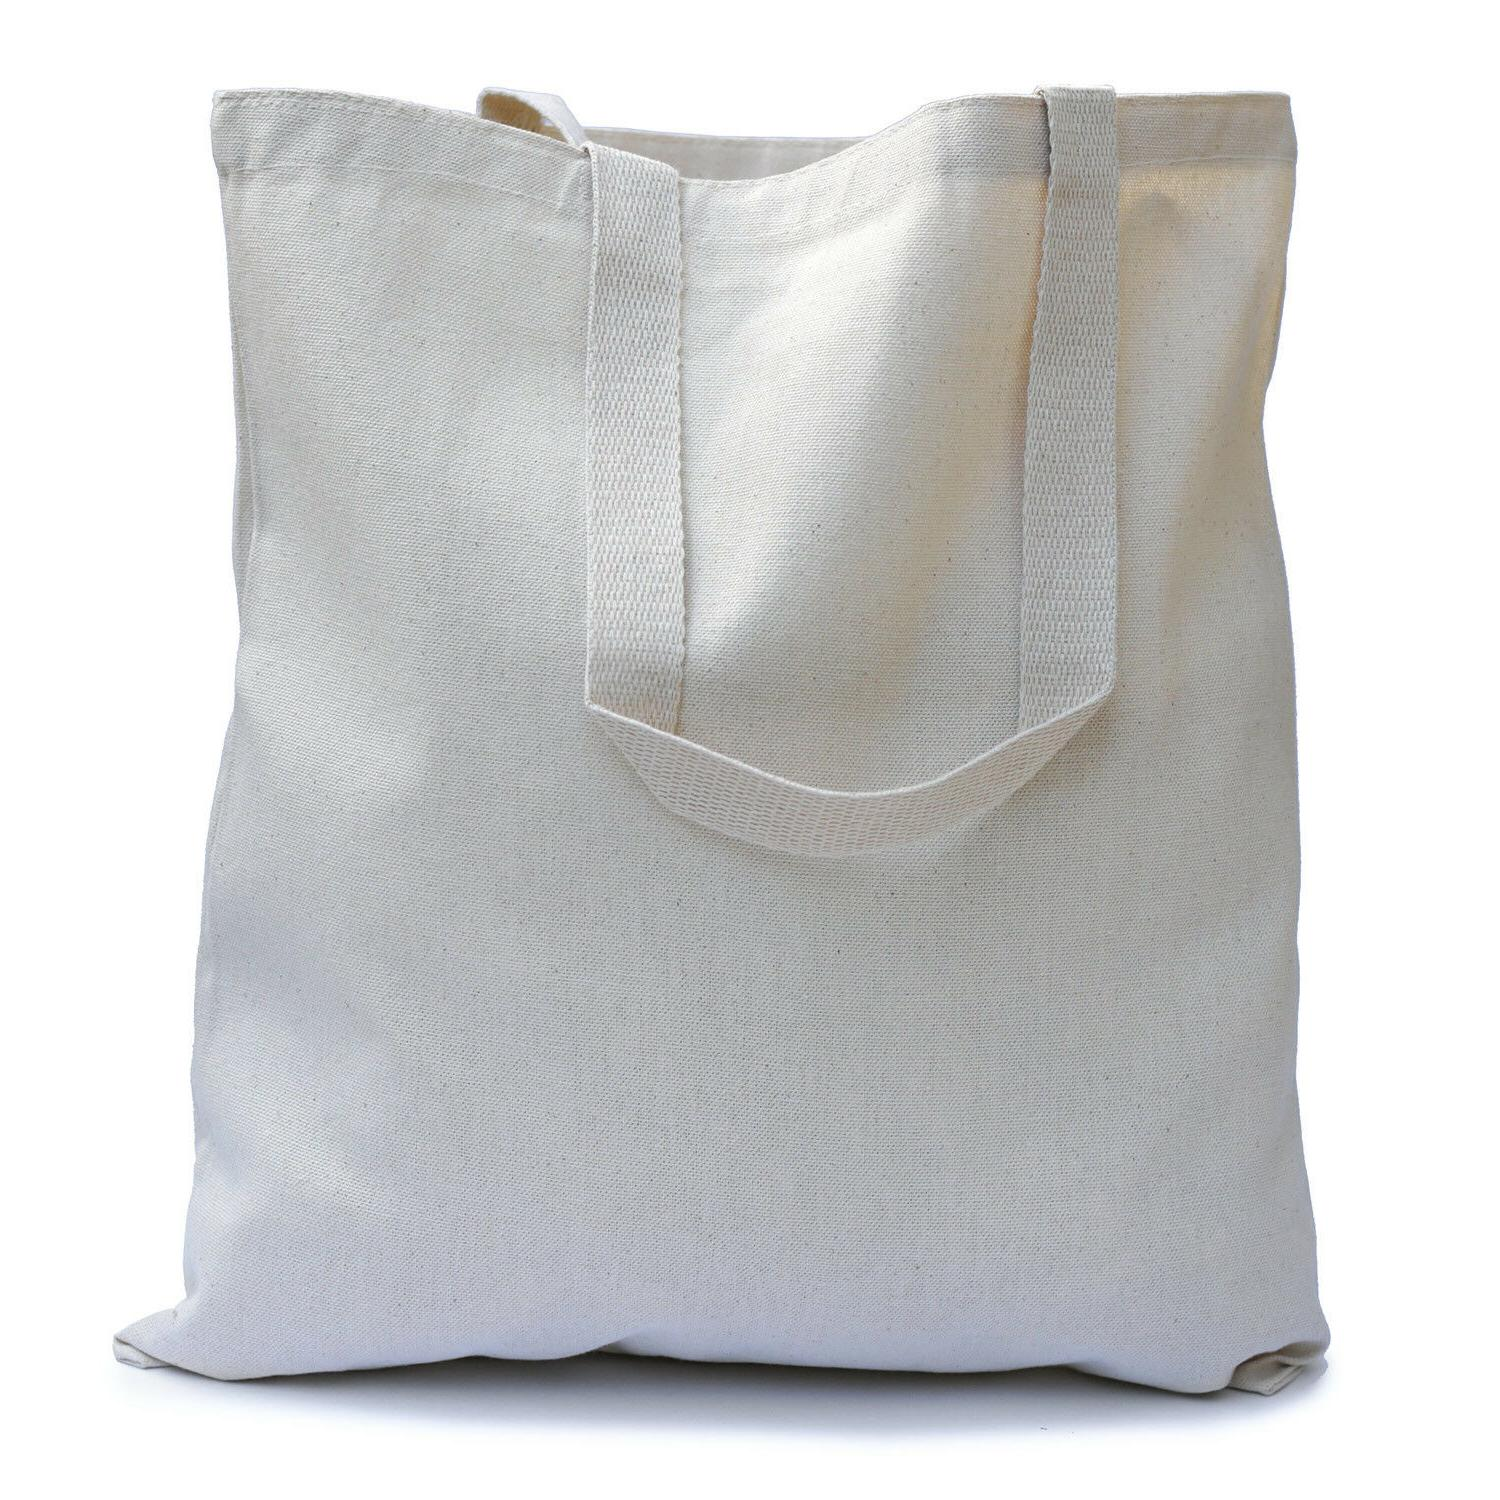 large natural tote bag for shopping school